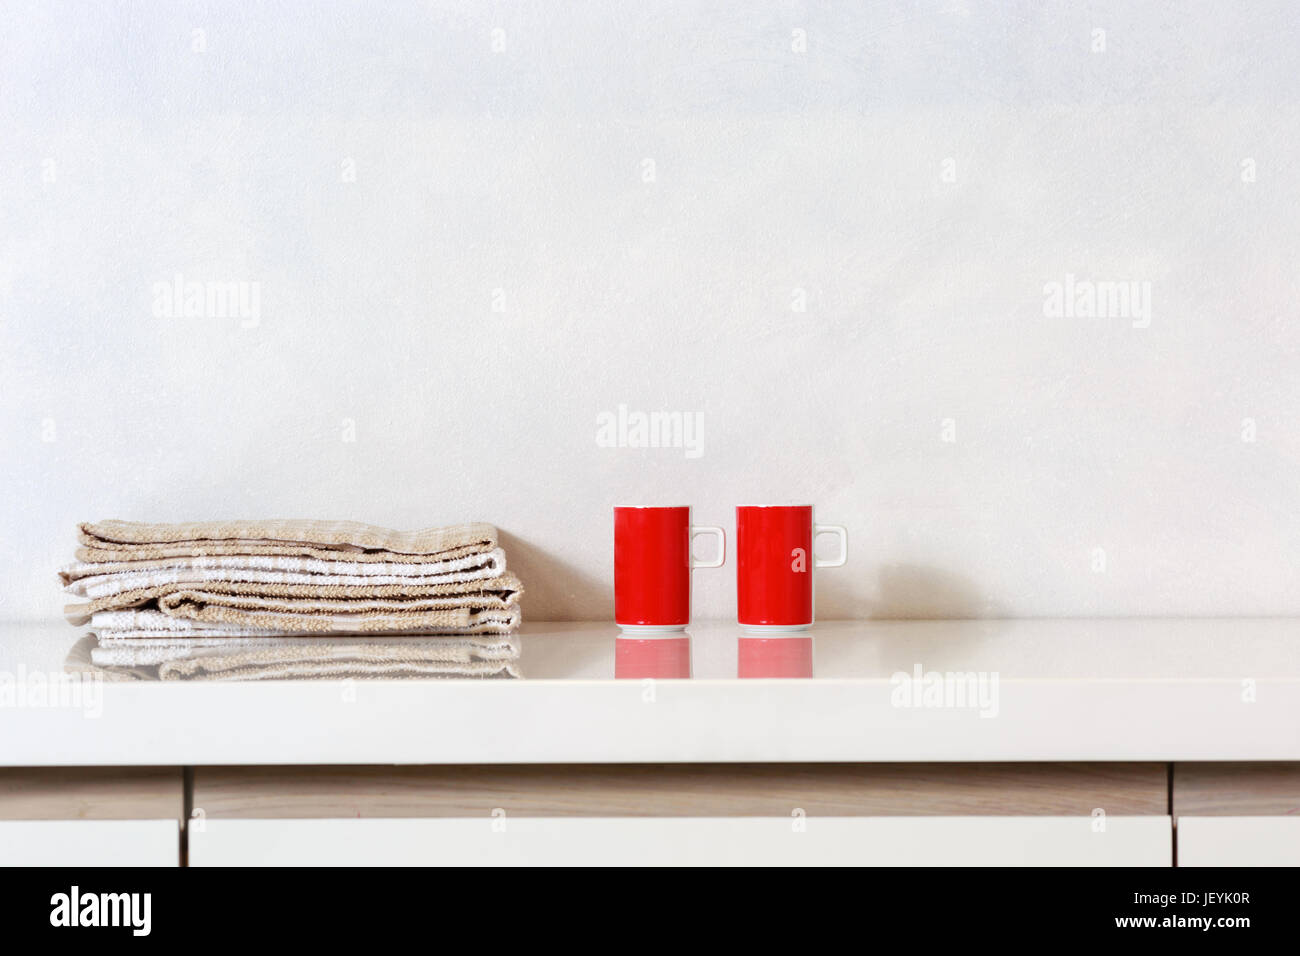 Detail Of Two Cups And Kitchen Rags On A Kitchen Countertop.   Stock Image